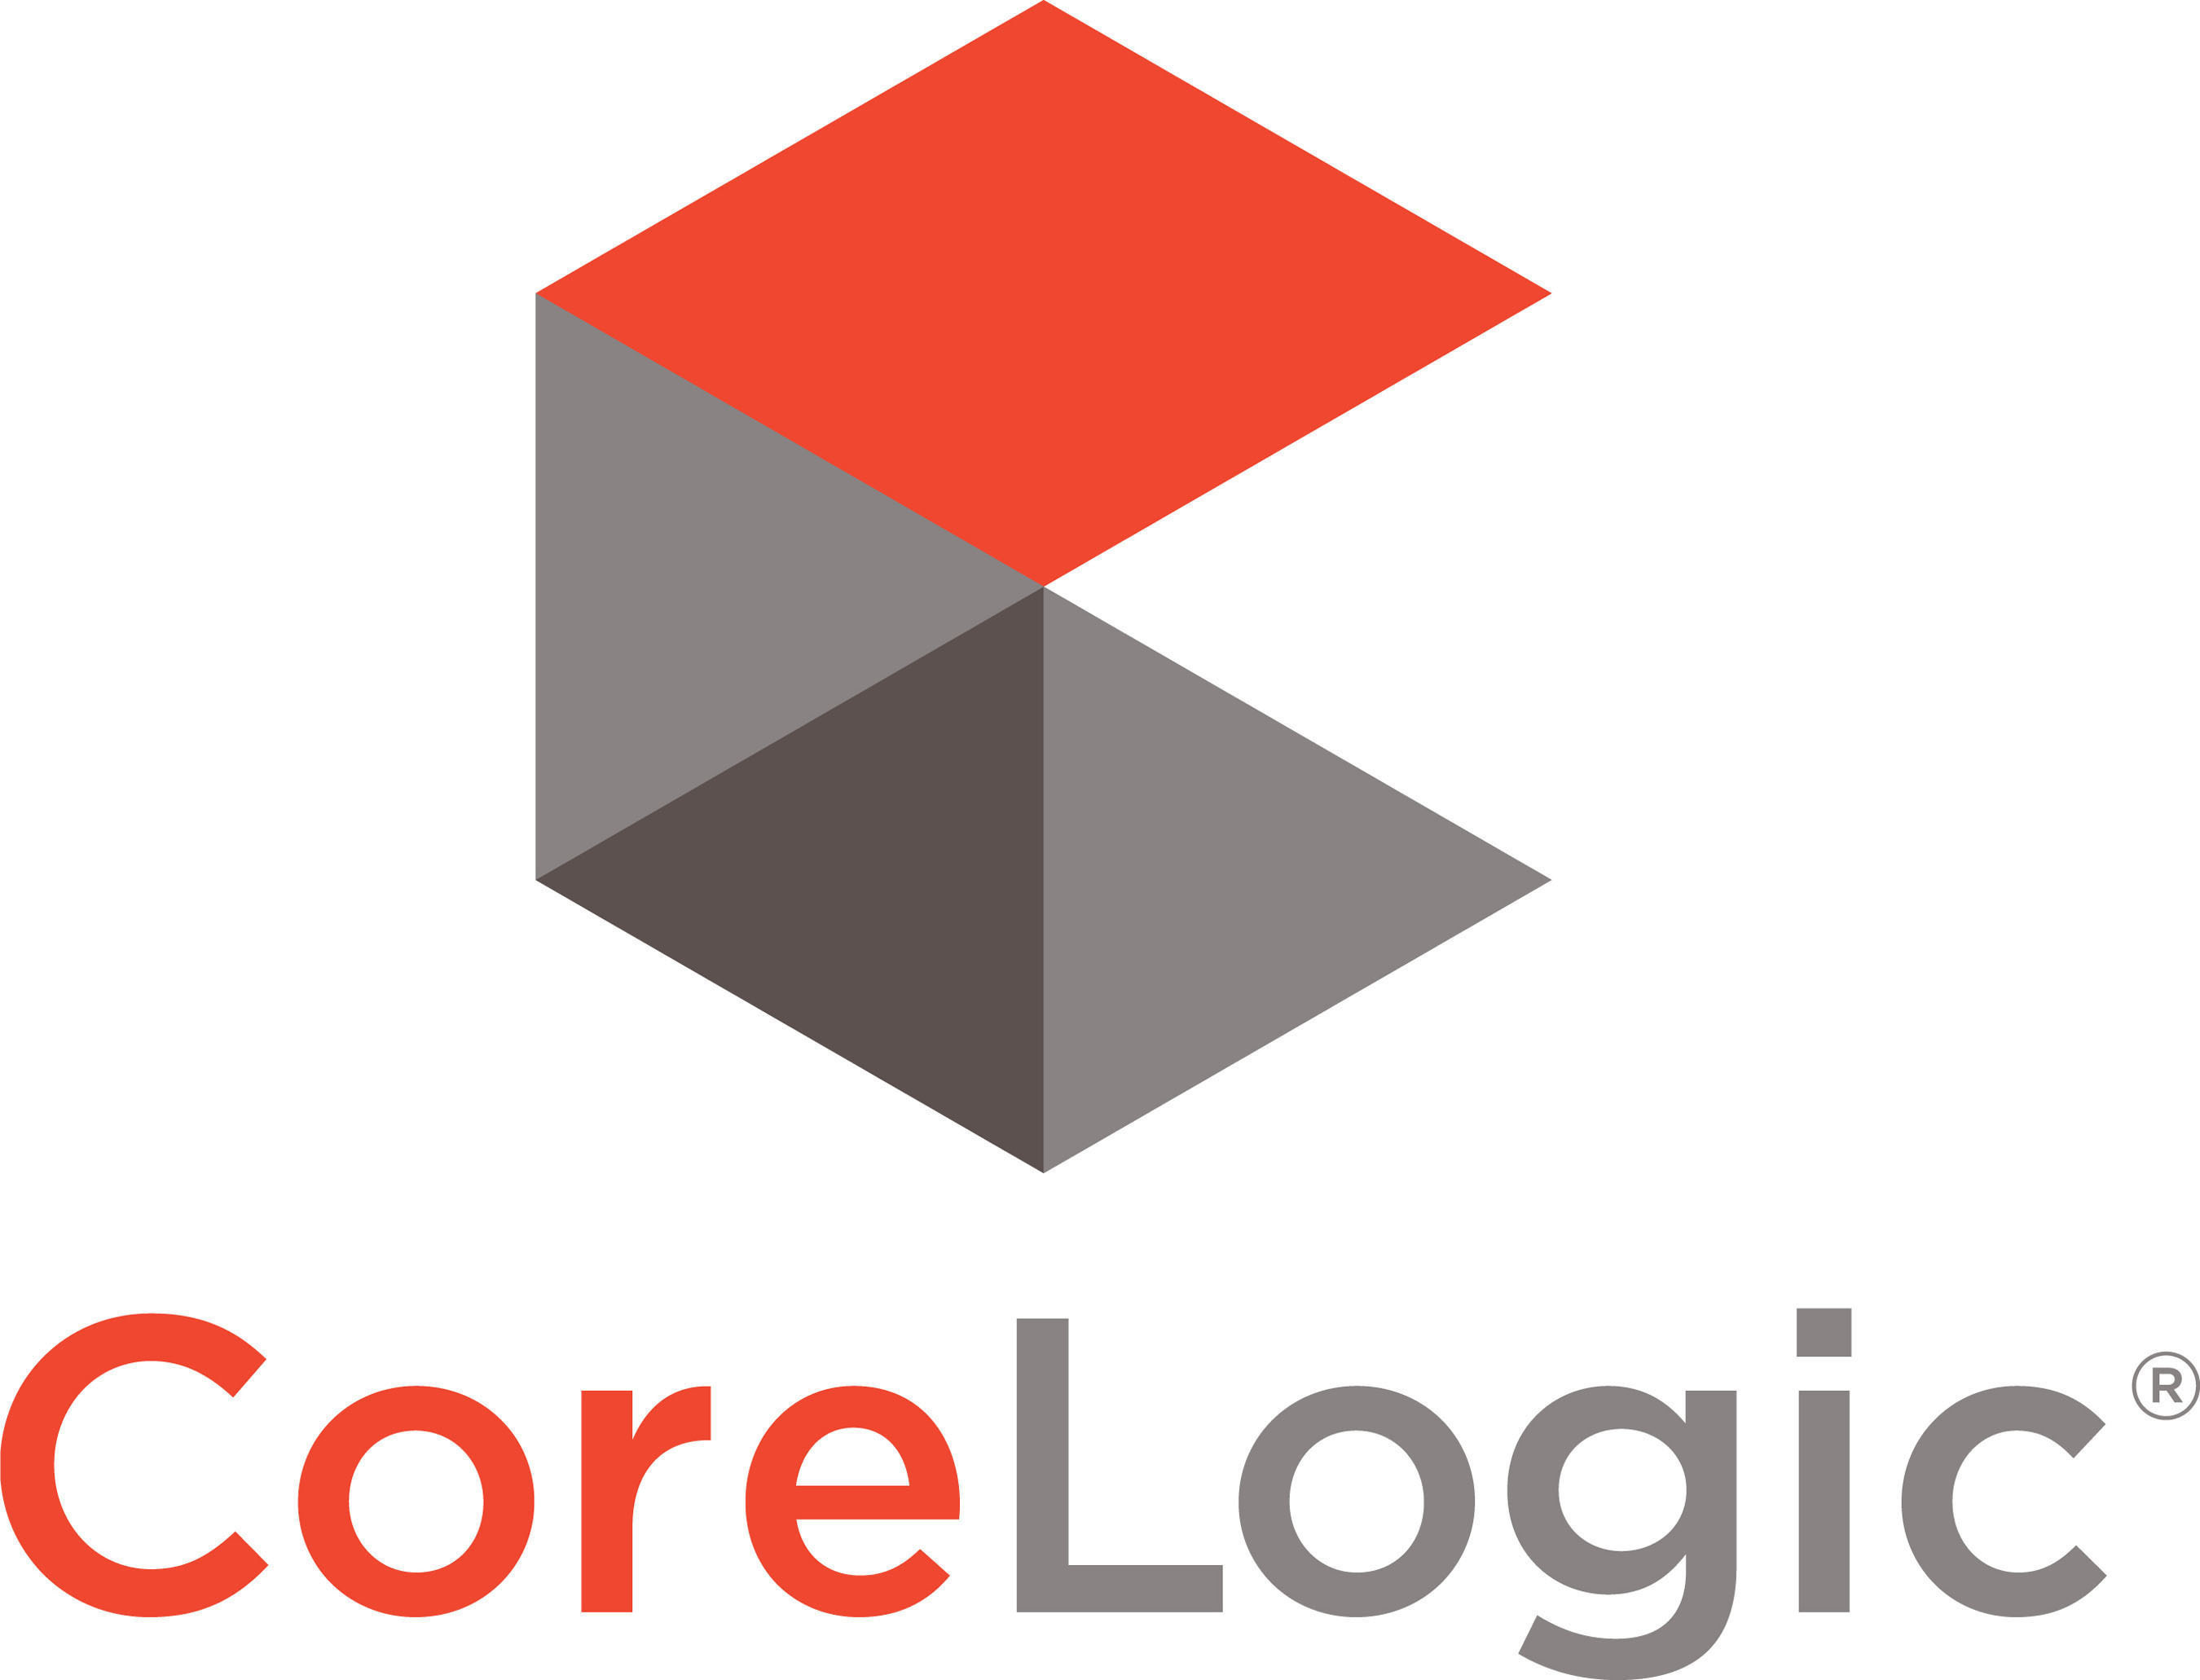 CoreLogic Reports National Homes Prices Rose by 6.8 Percent Year Over Year in April 2015